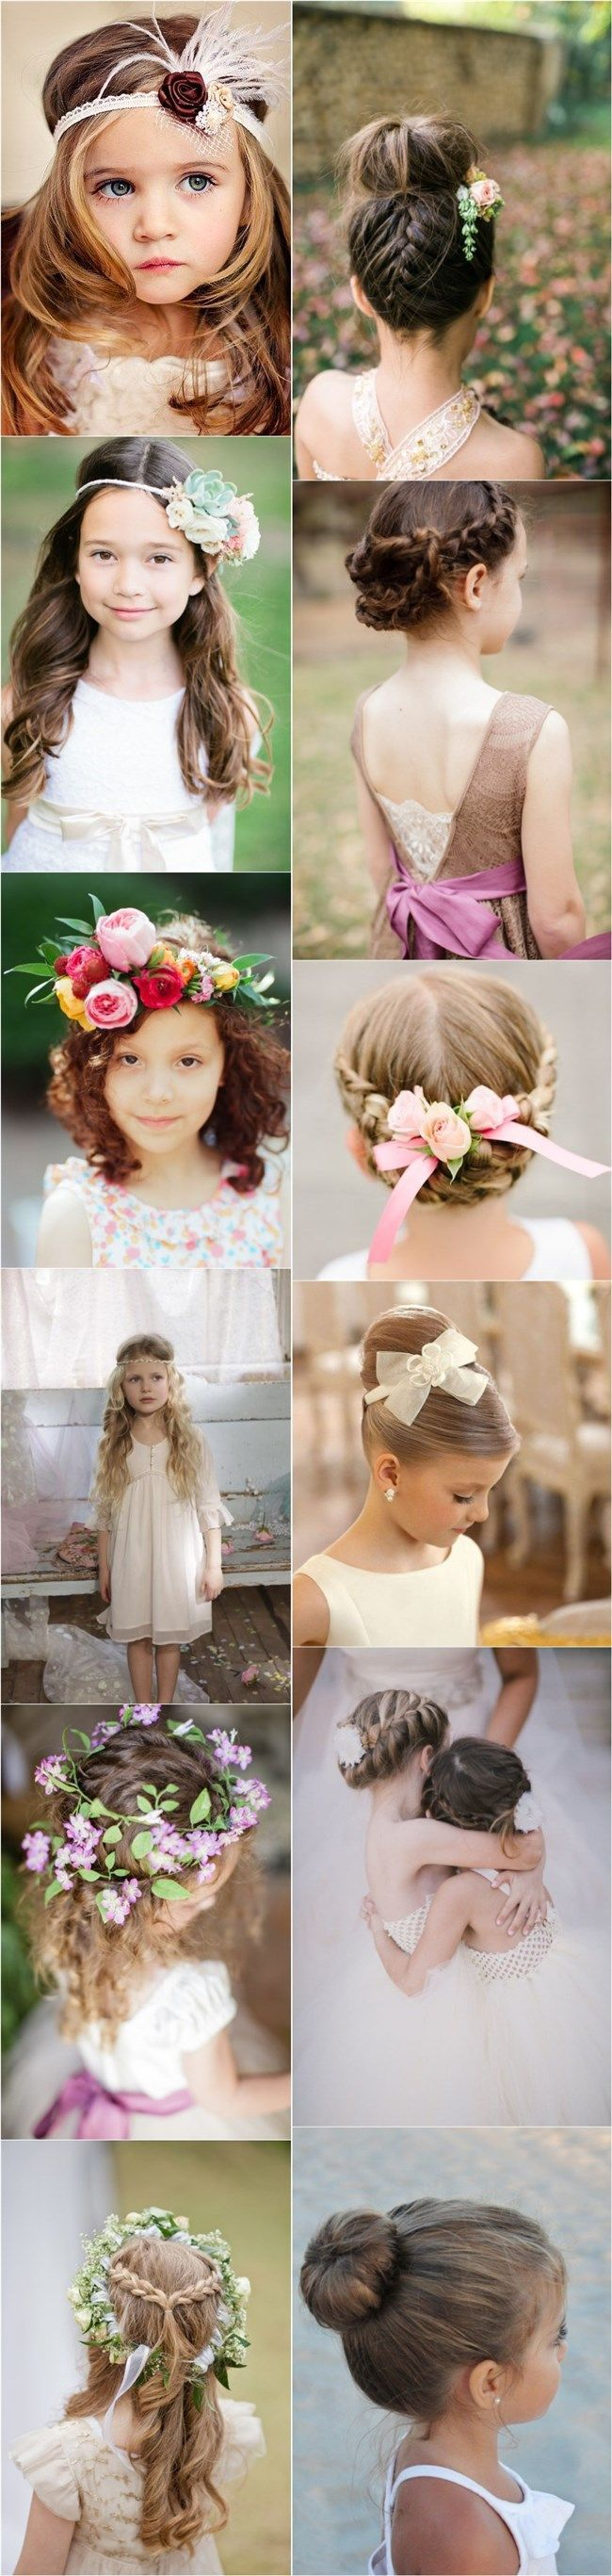 Bridal Hairstyles : 30 Super Cute Little Girl Hairstyles for Wedding ...